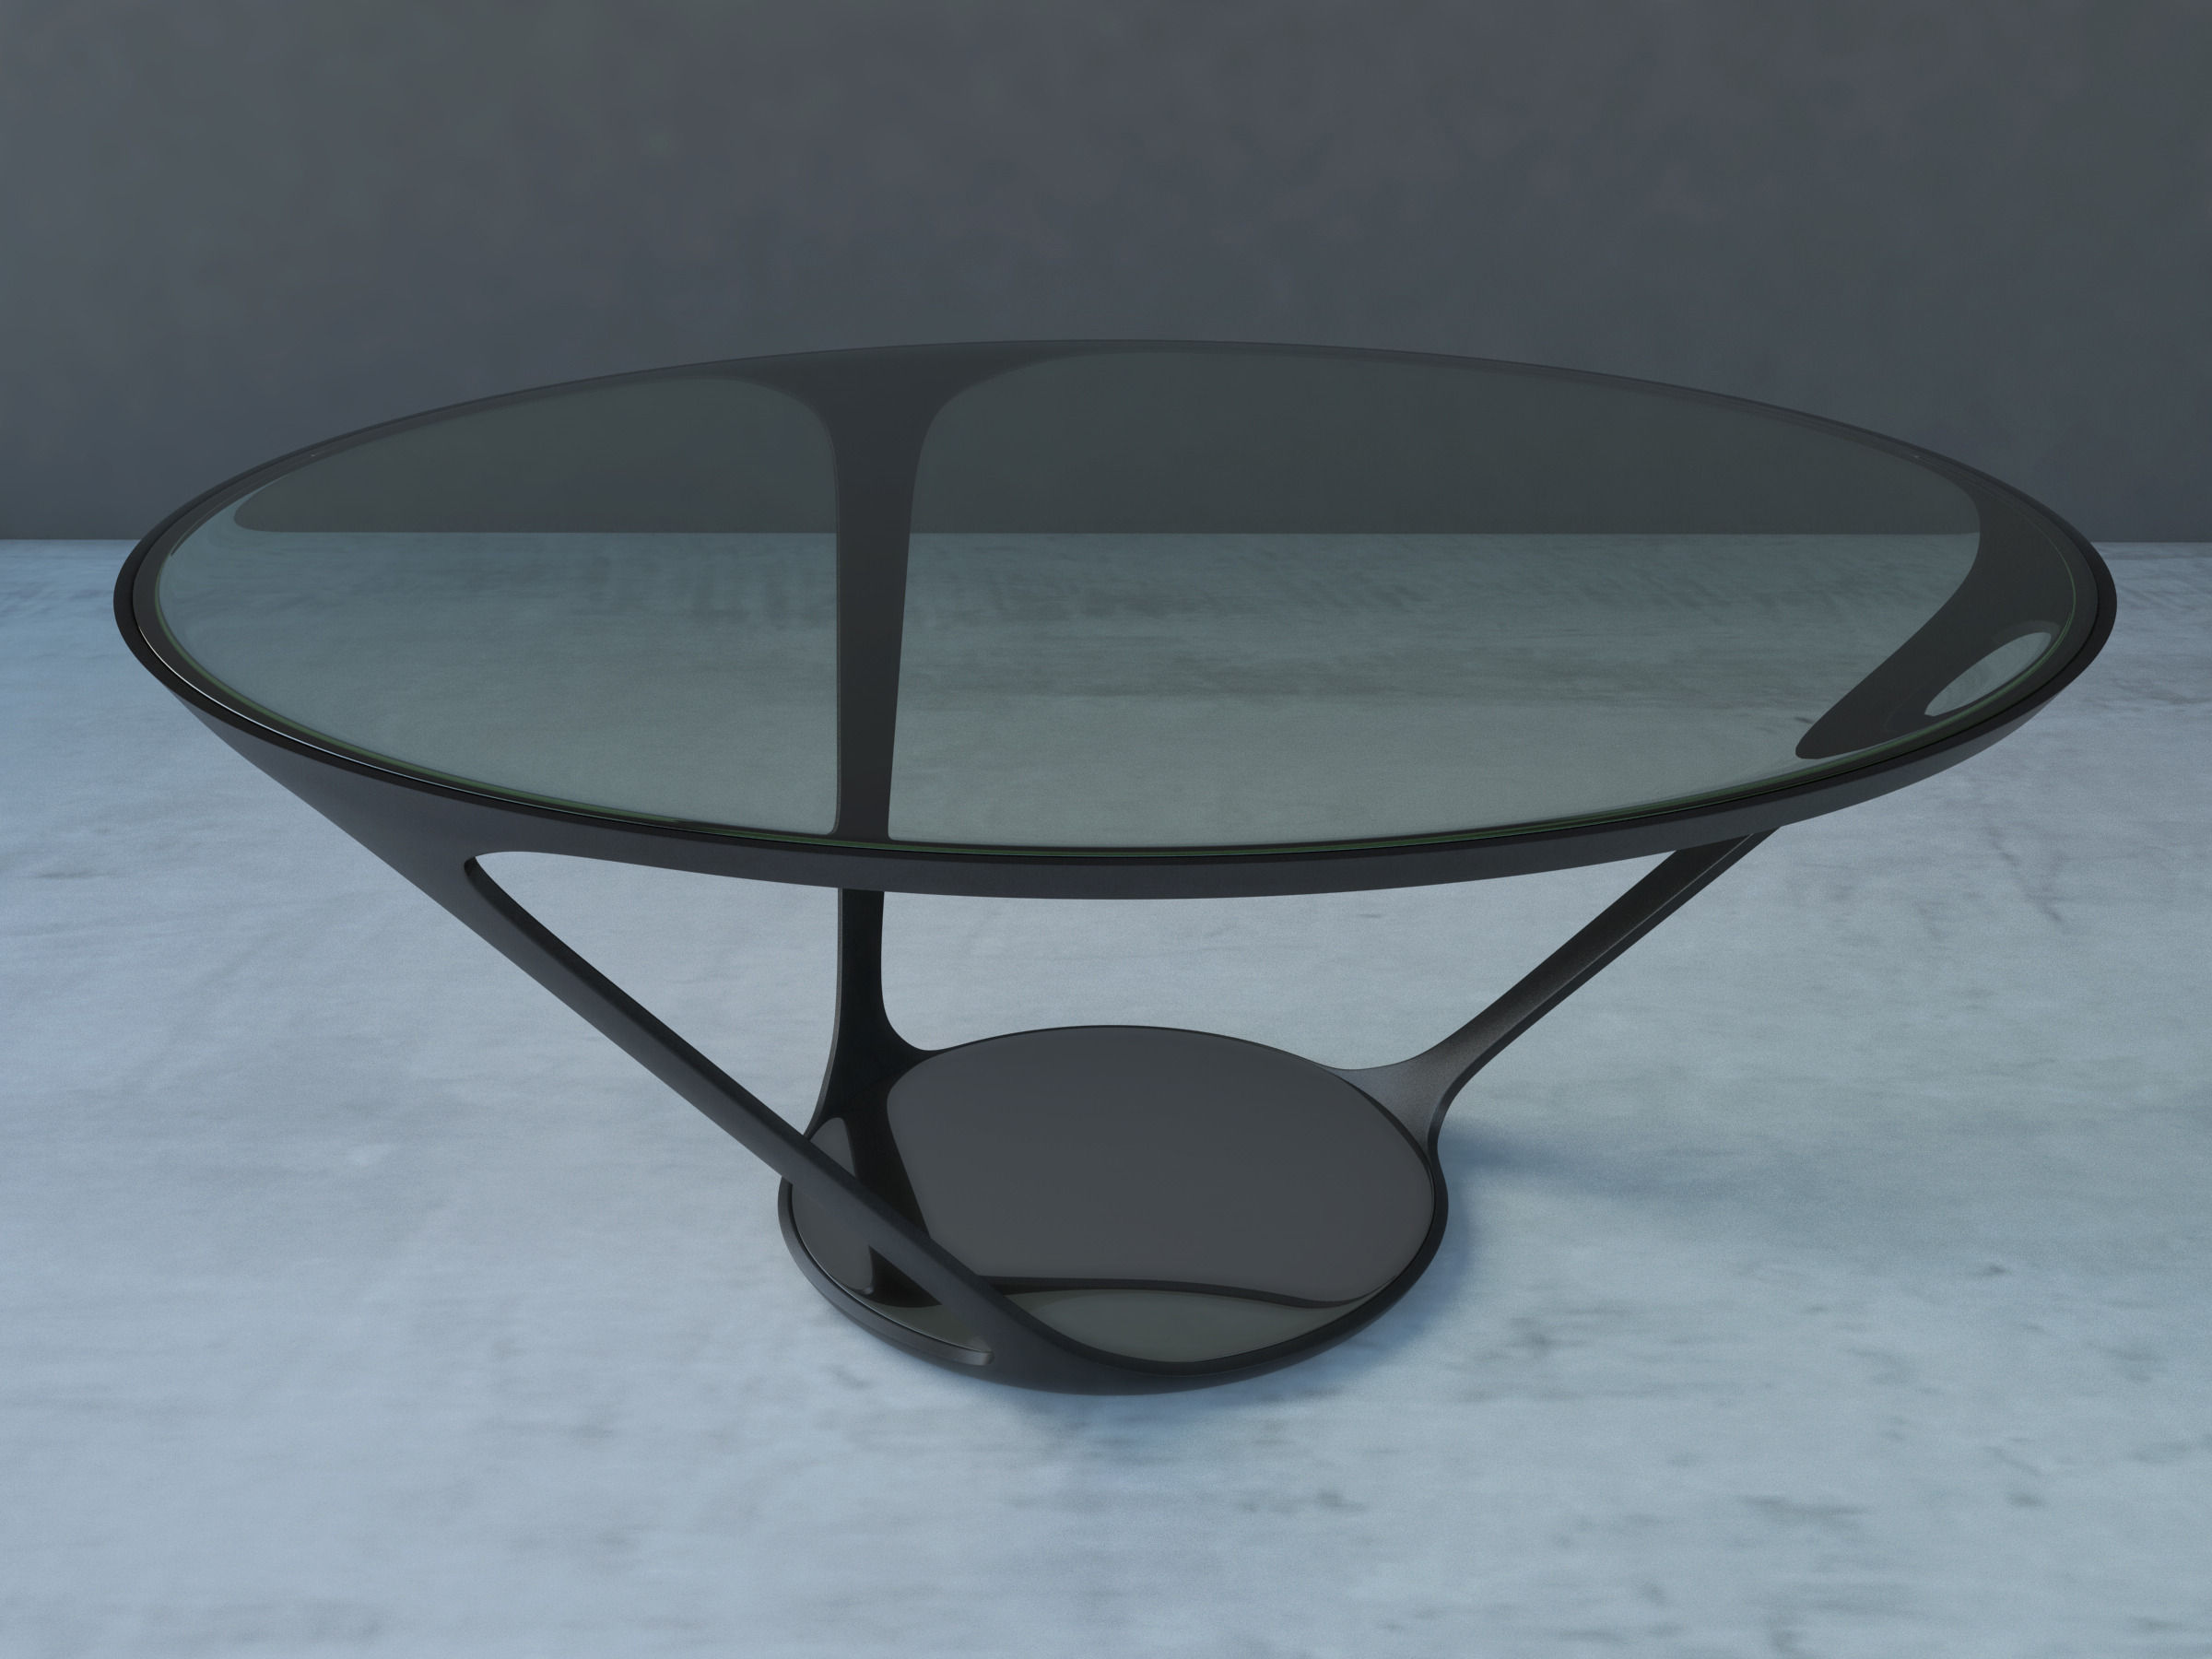 Ora ito dinning table 3d model obj 3ds fbx c4d dxf for Table ora ito